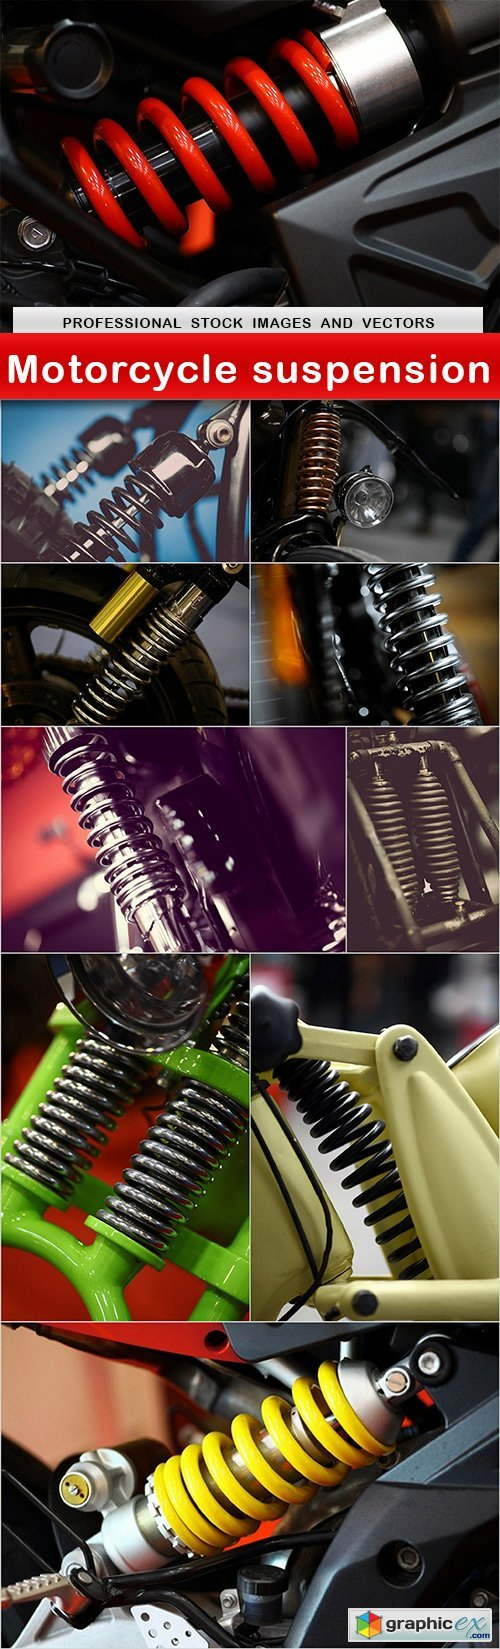 Motorcycle suspension - 10 UHQ JPEG